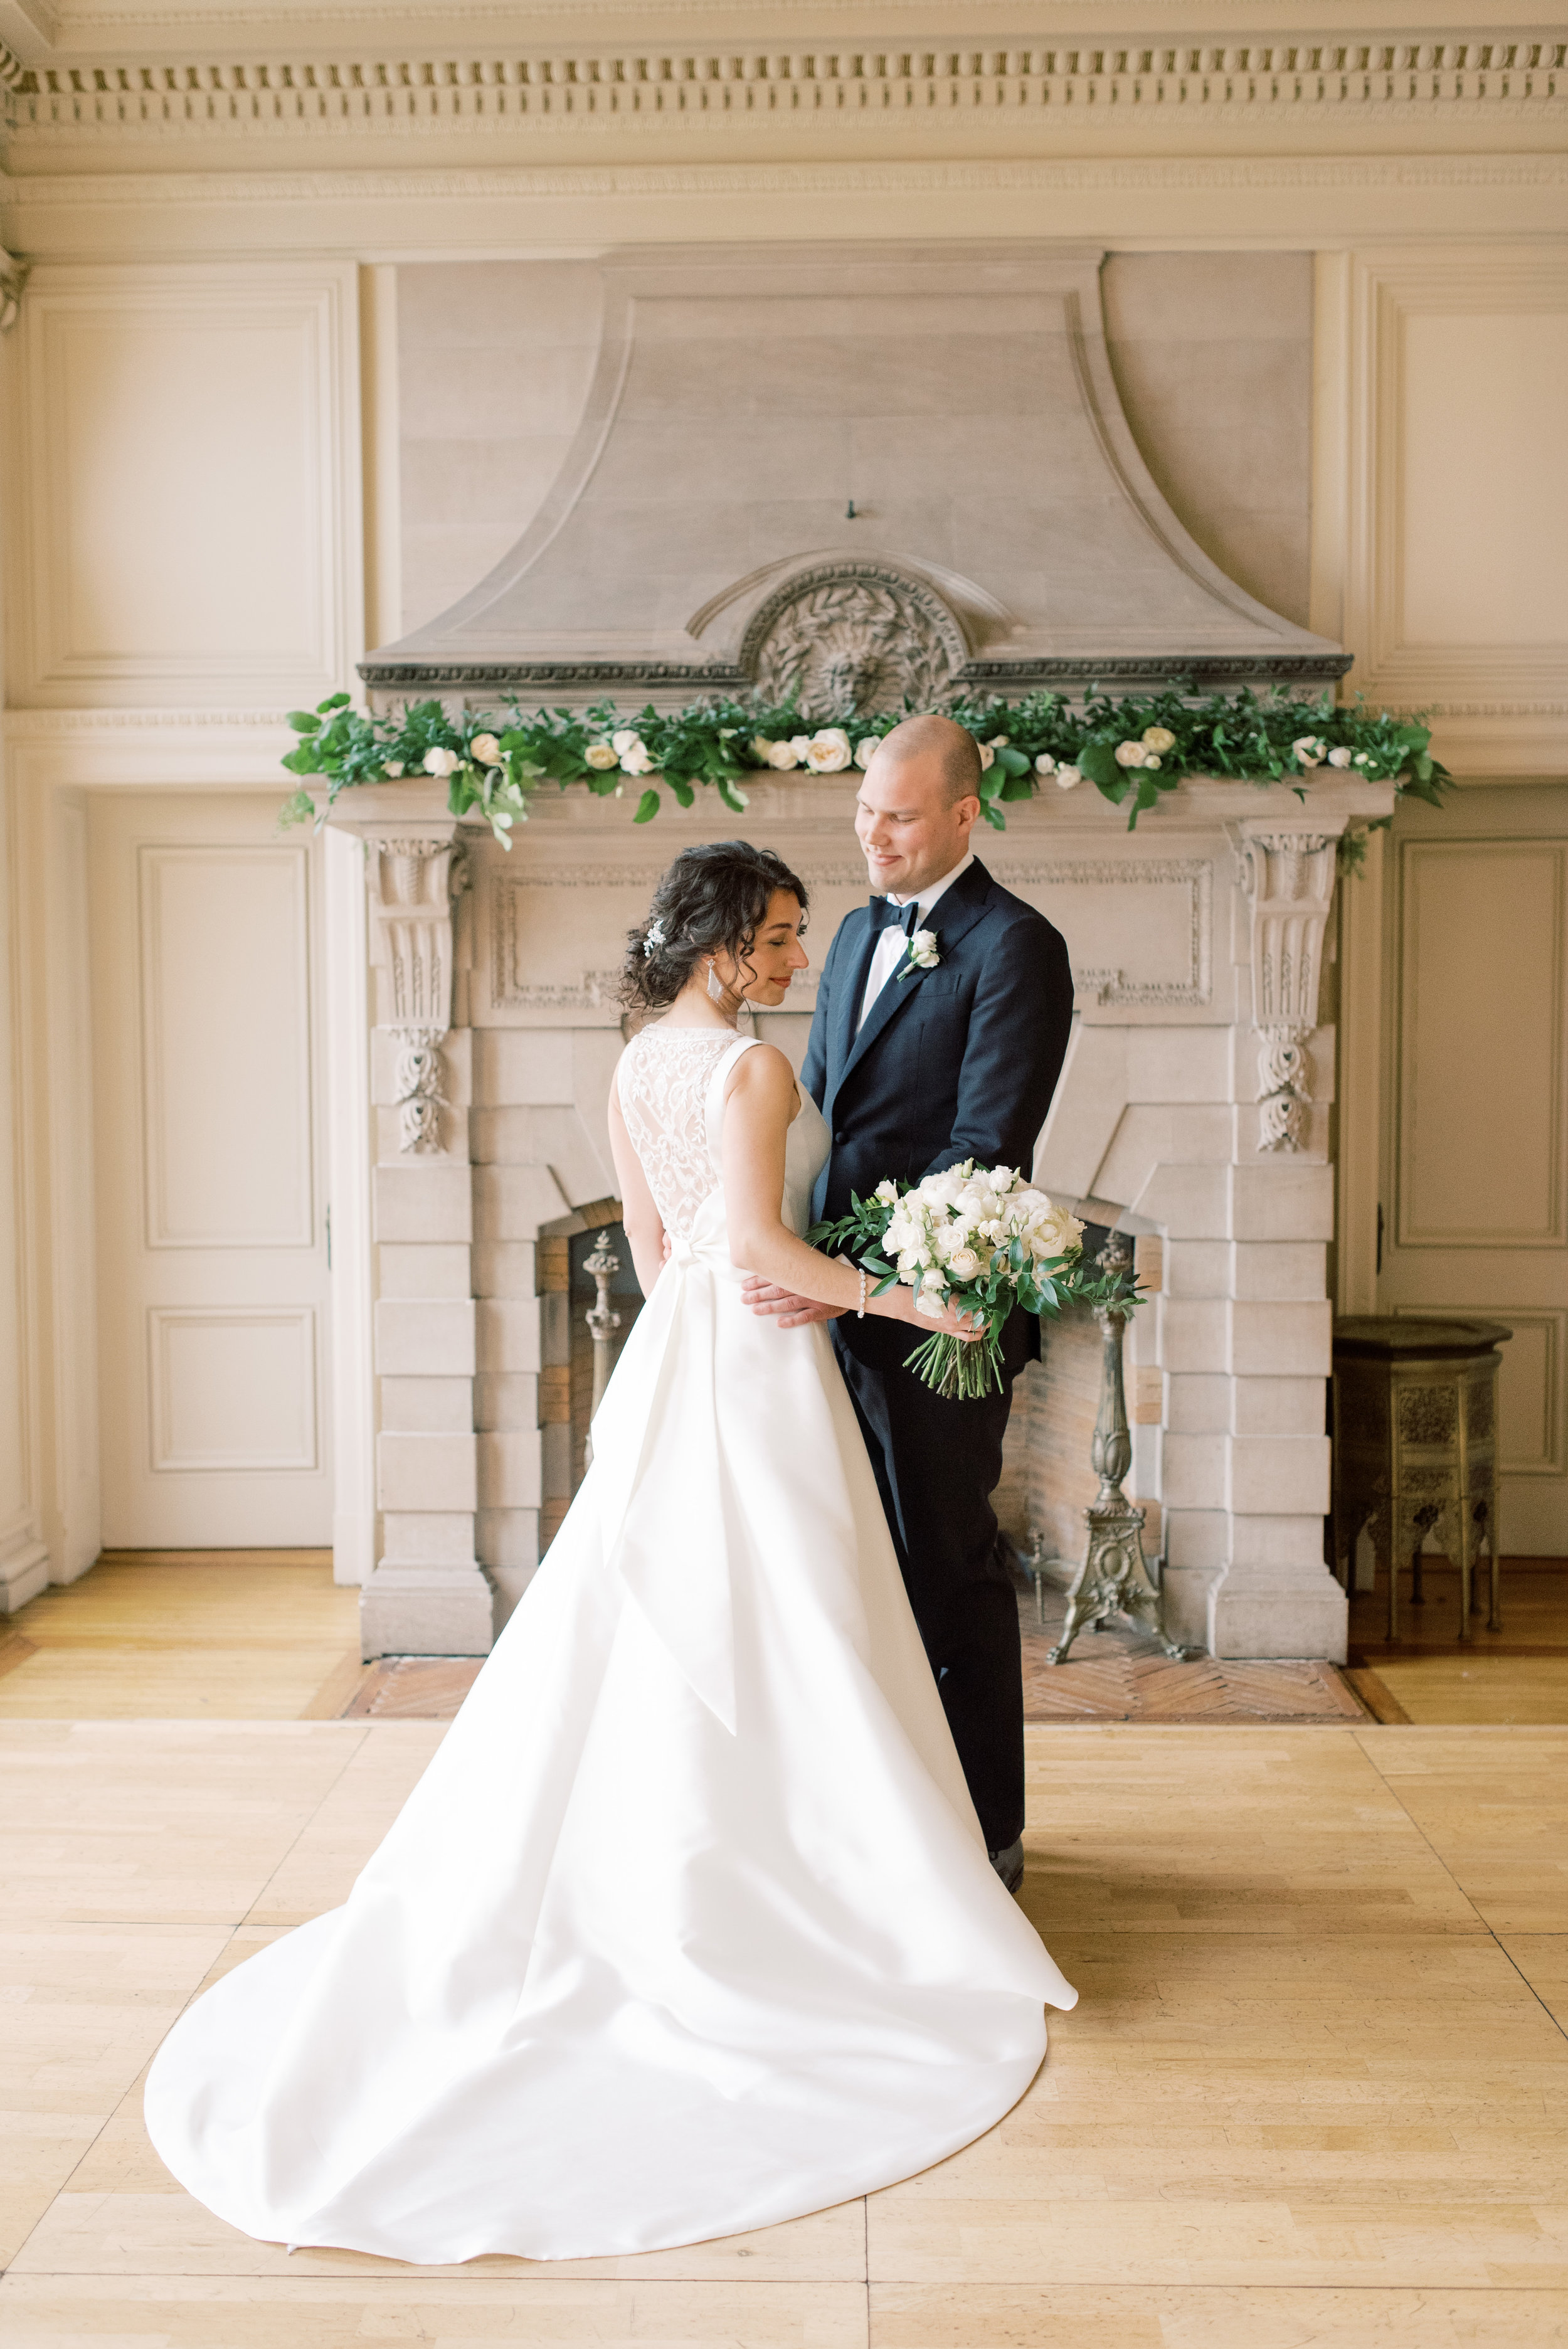 We so love this classic bride and groom standing in front this unique french stone fireplace at their romantic and classic wedding day for their french inspired green and white Cairnwood Estate wedding